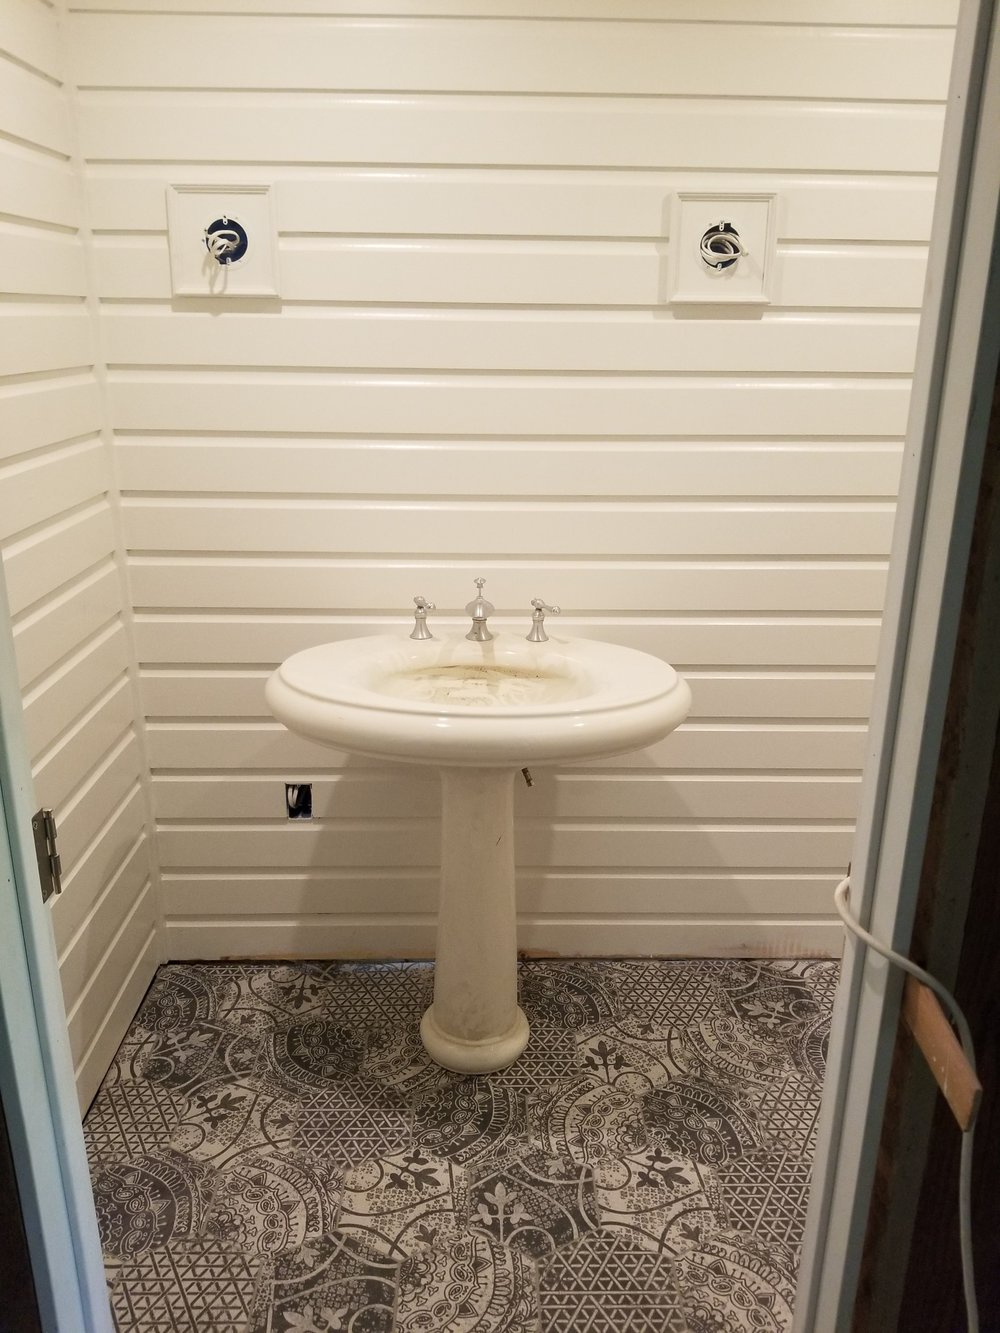 Check Out These Other Recent Tile Jobs